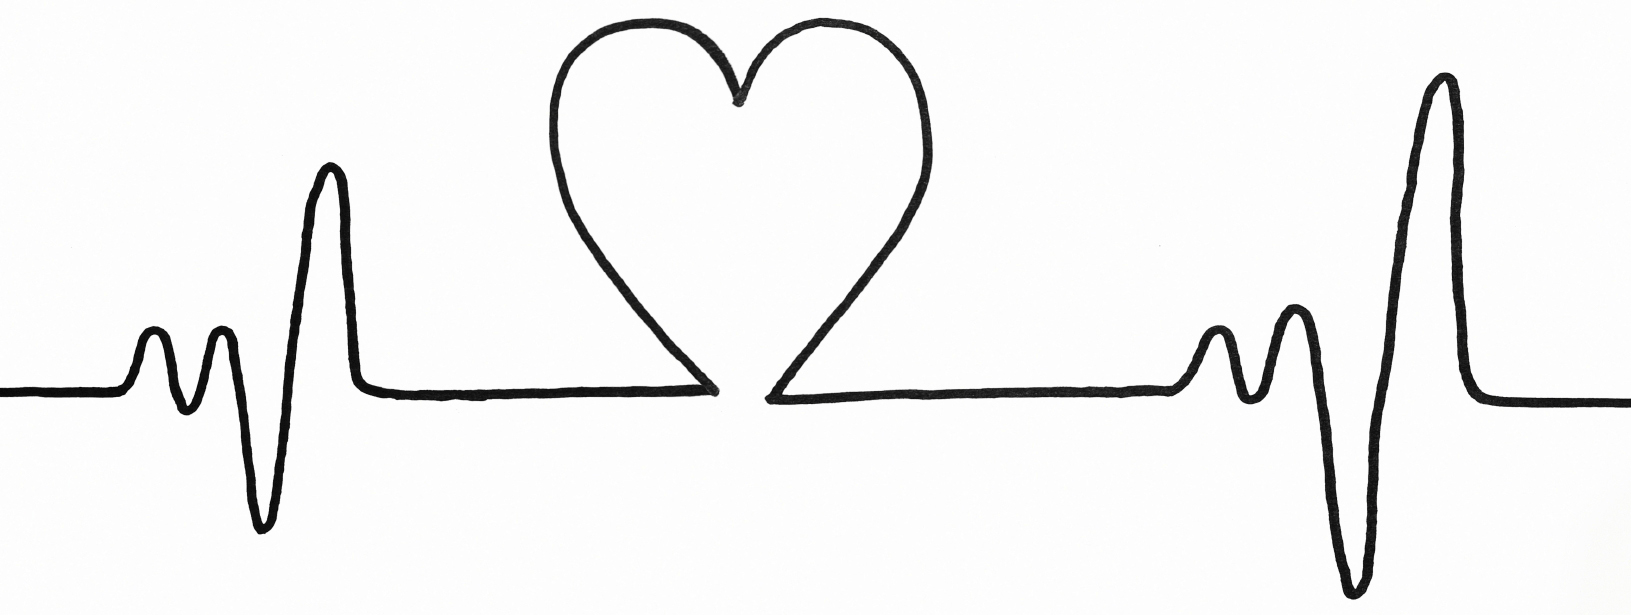 Heartbeat clipart heart drawing. Collection of free download